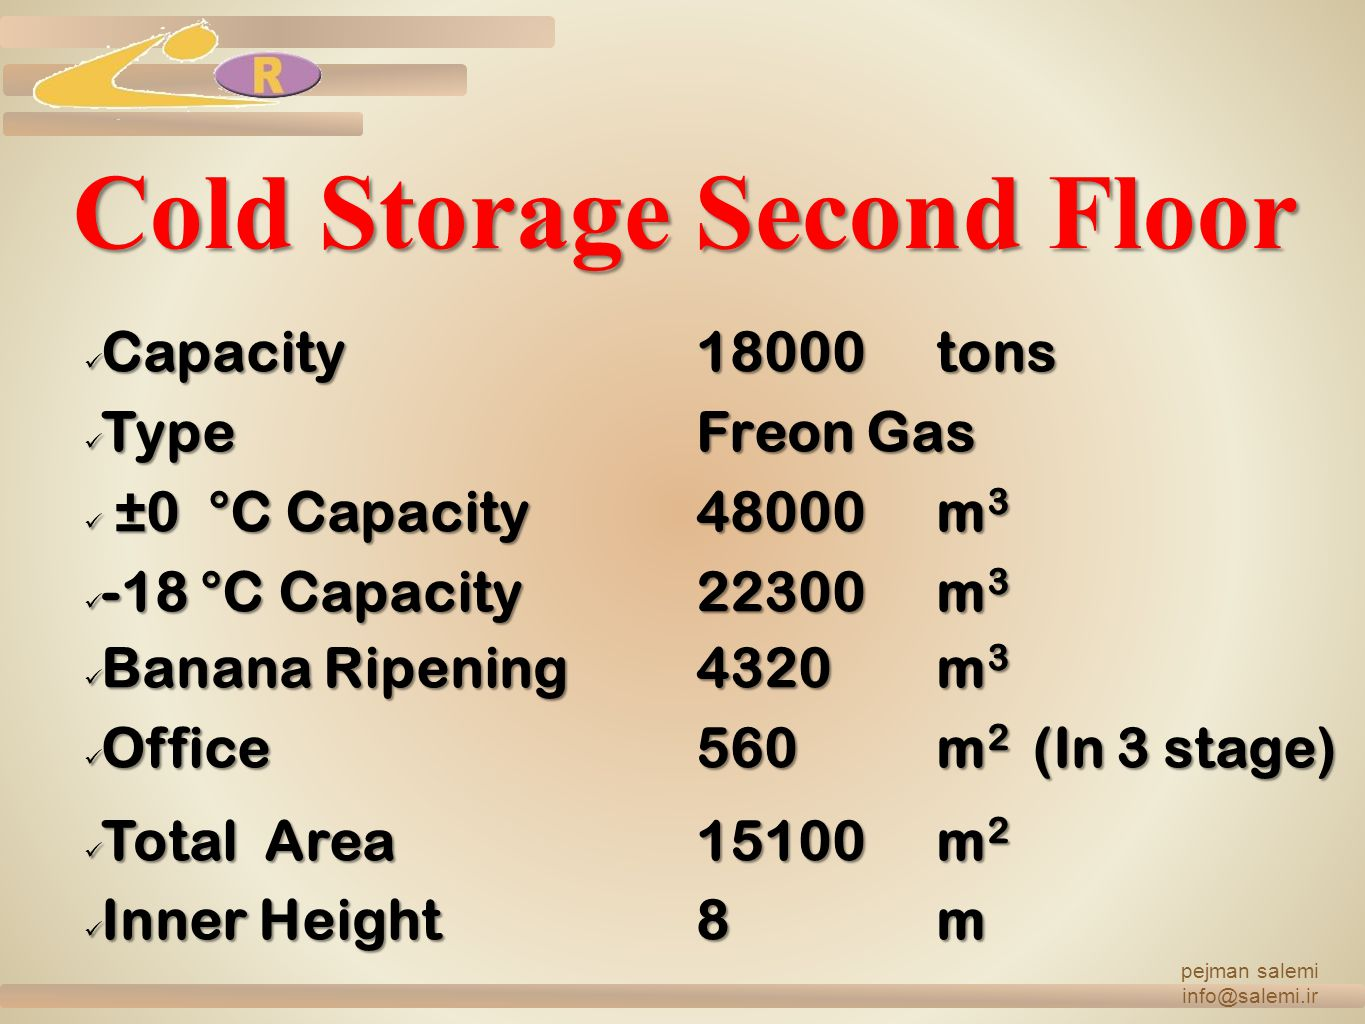 Cold Storage Second Floor